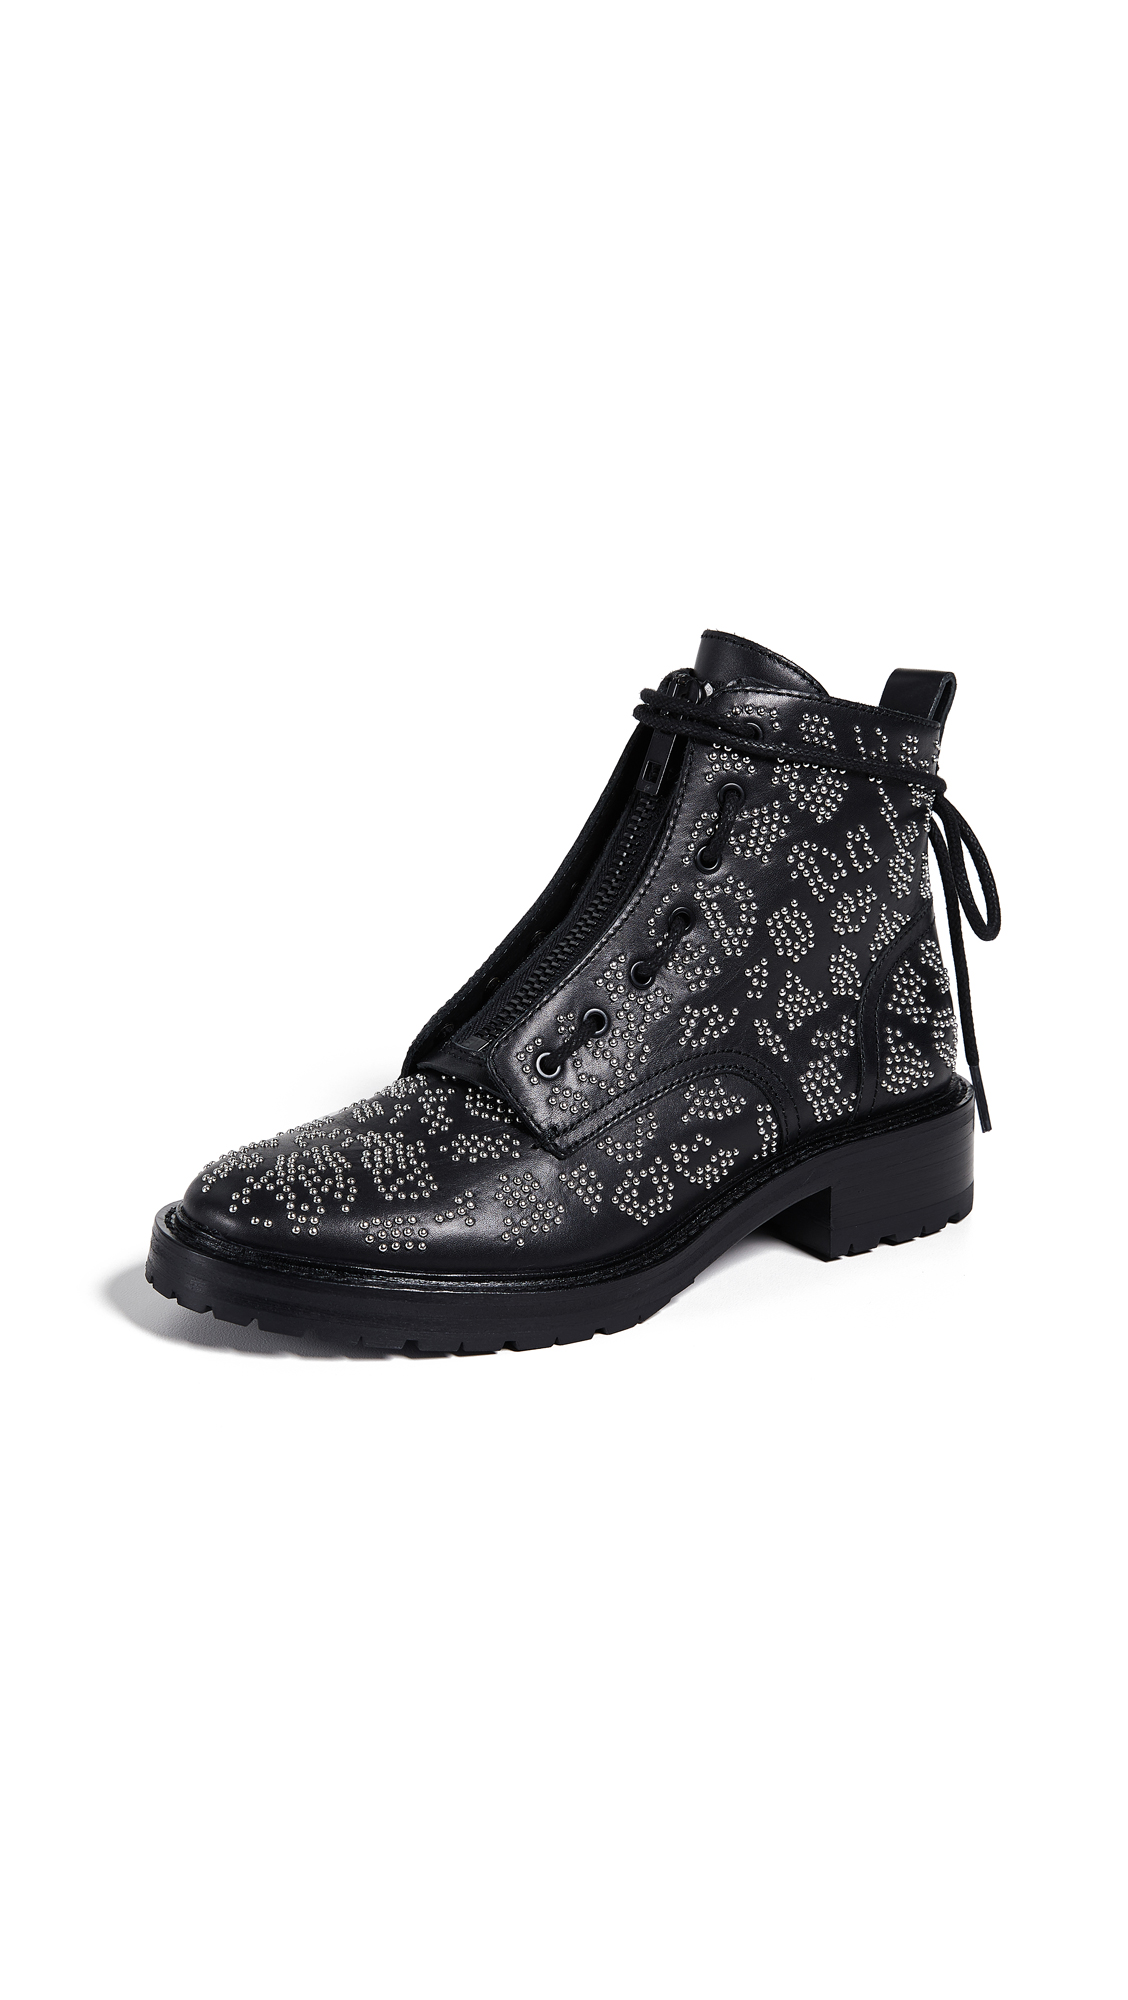 Rag & Bone Cannon Boots - Black/Silver